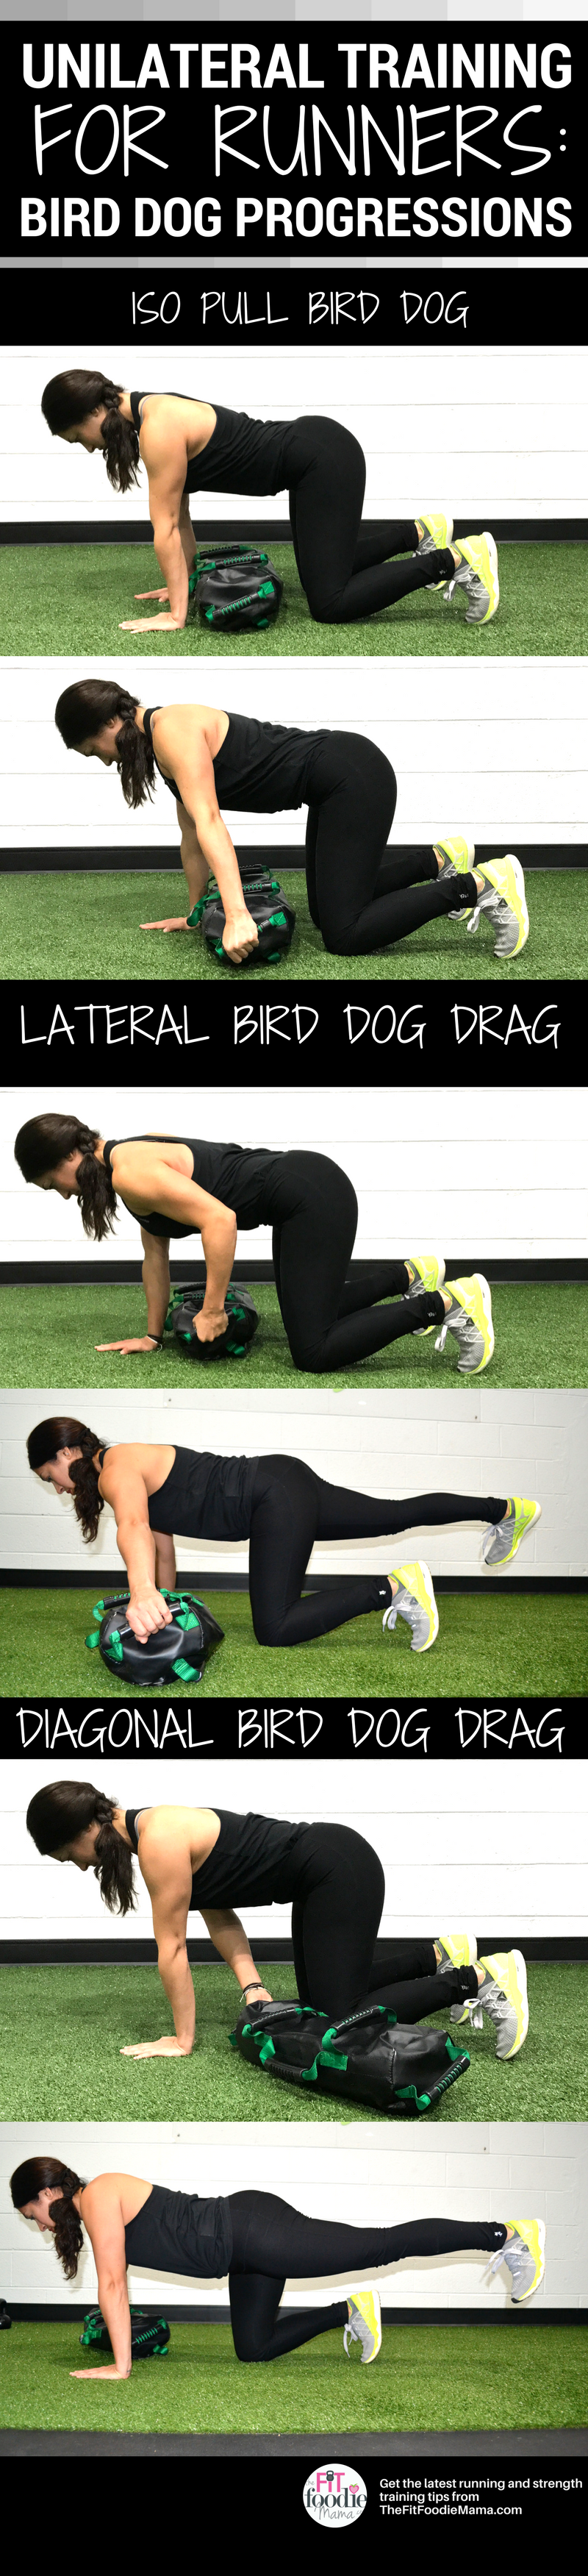 Unilateral Training from the Ground Up for Runners: Bird Dog Progressions